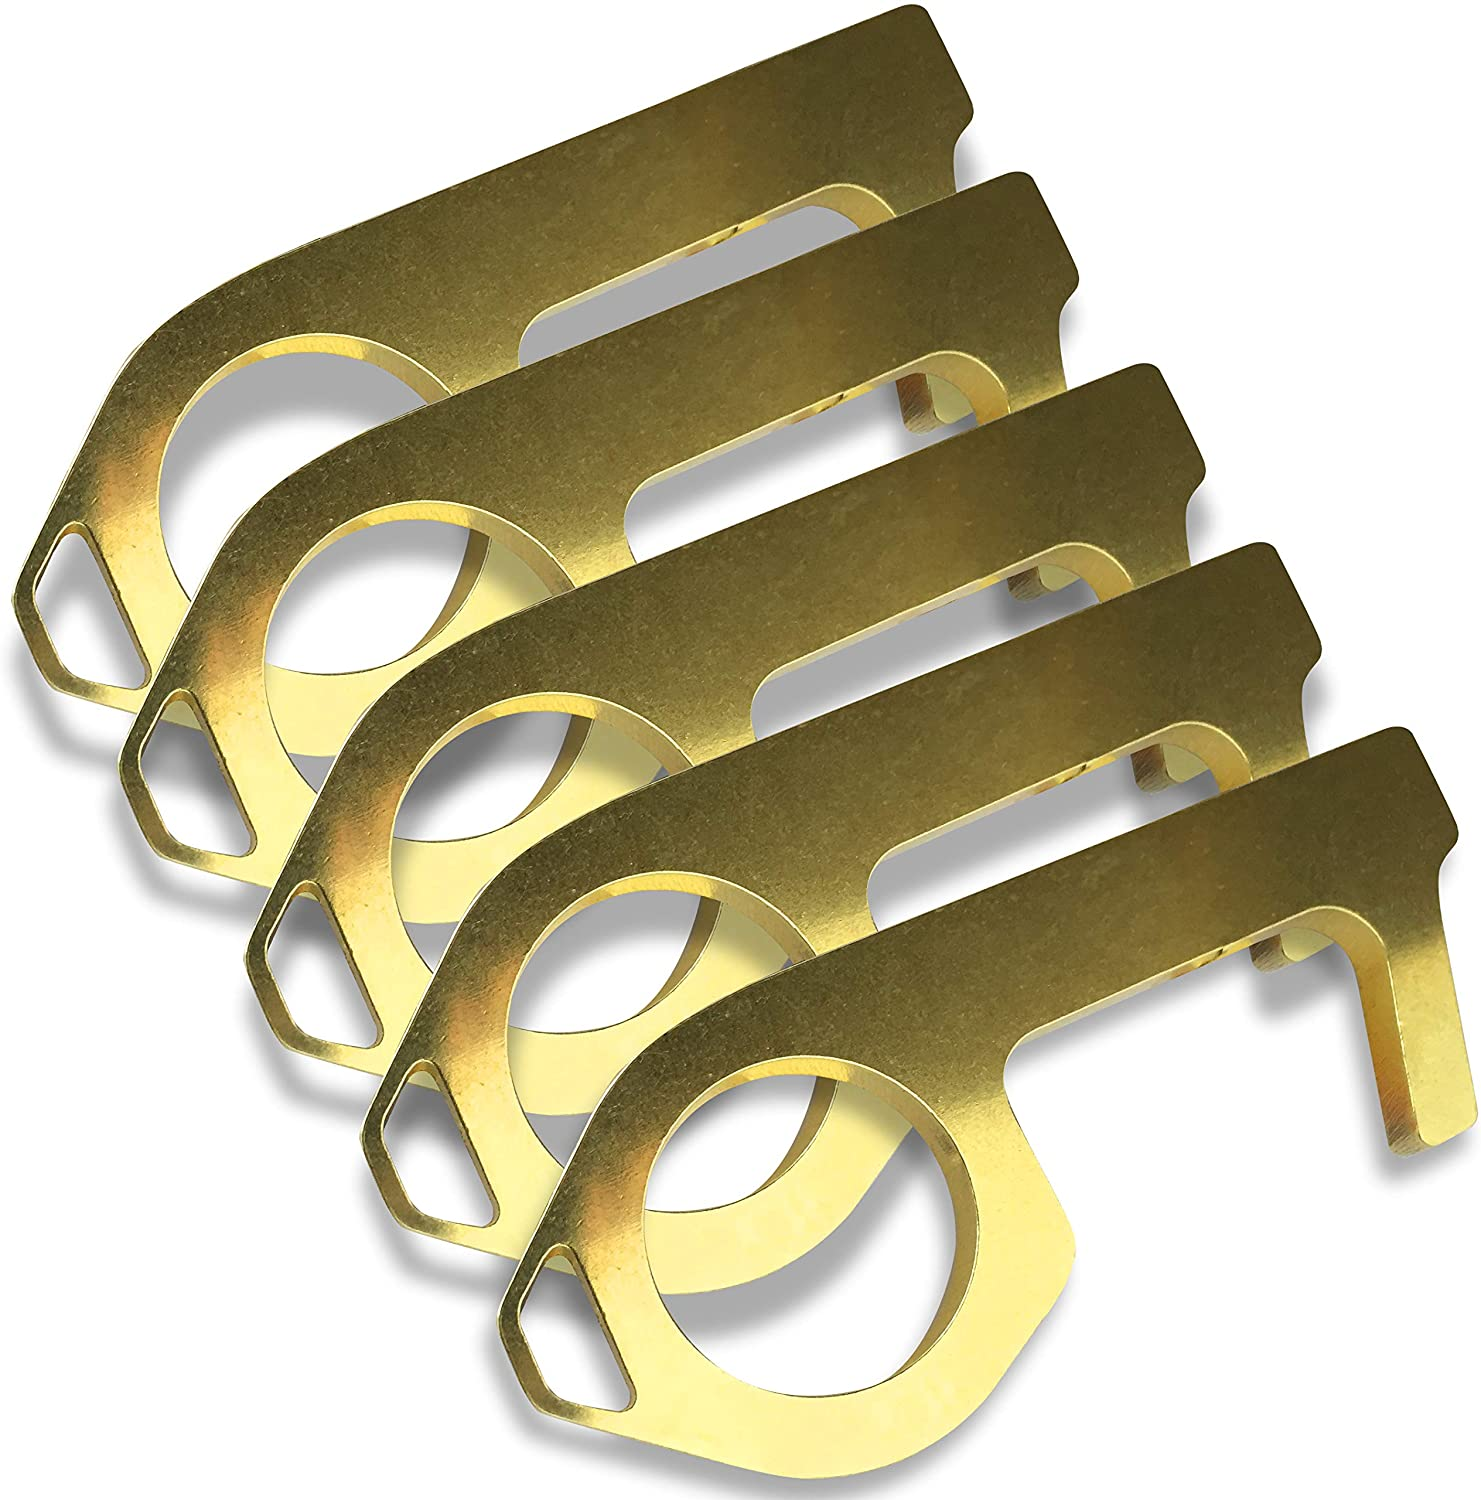 YouTheFan GermKey No Touch Brass Hand Tool Pack of 5